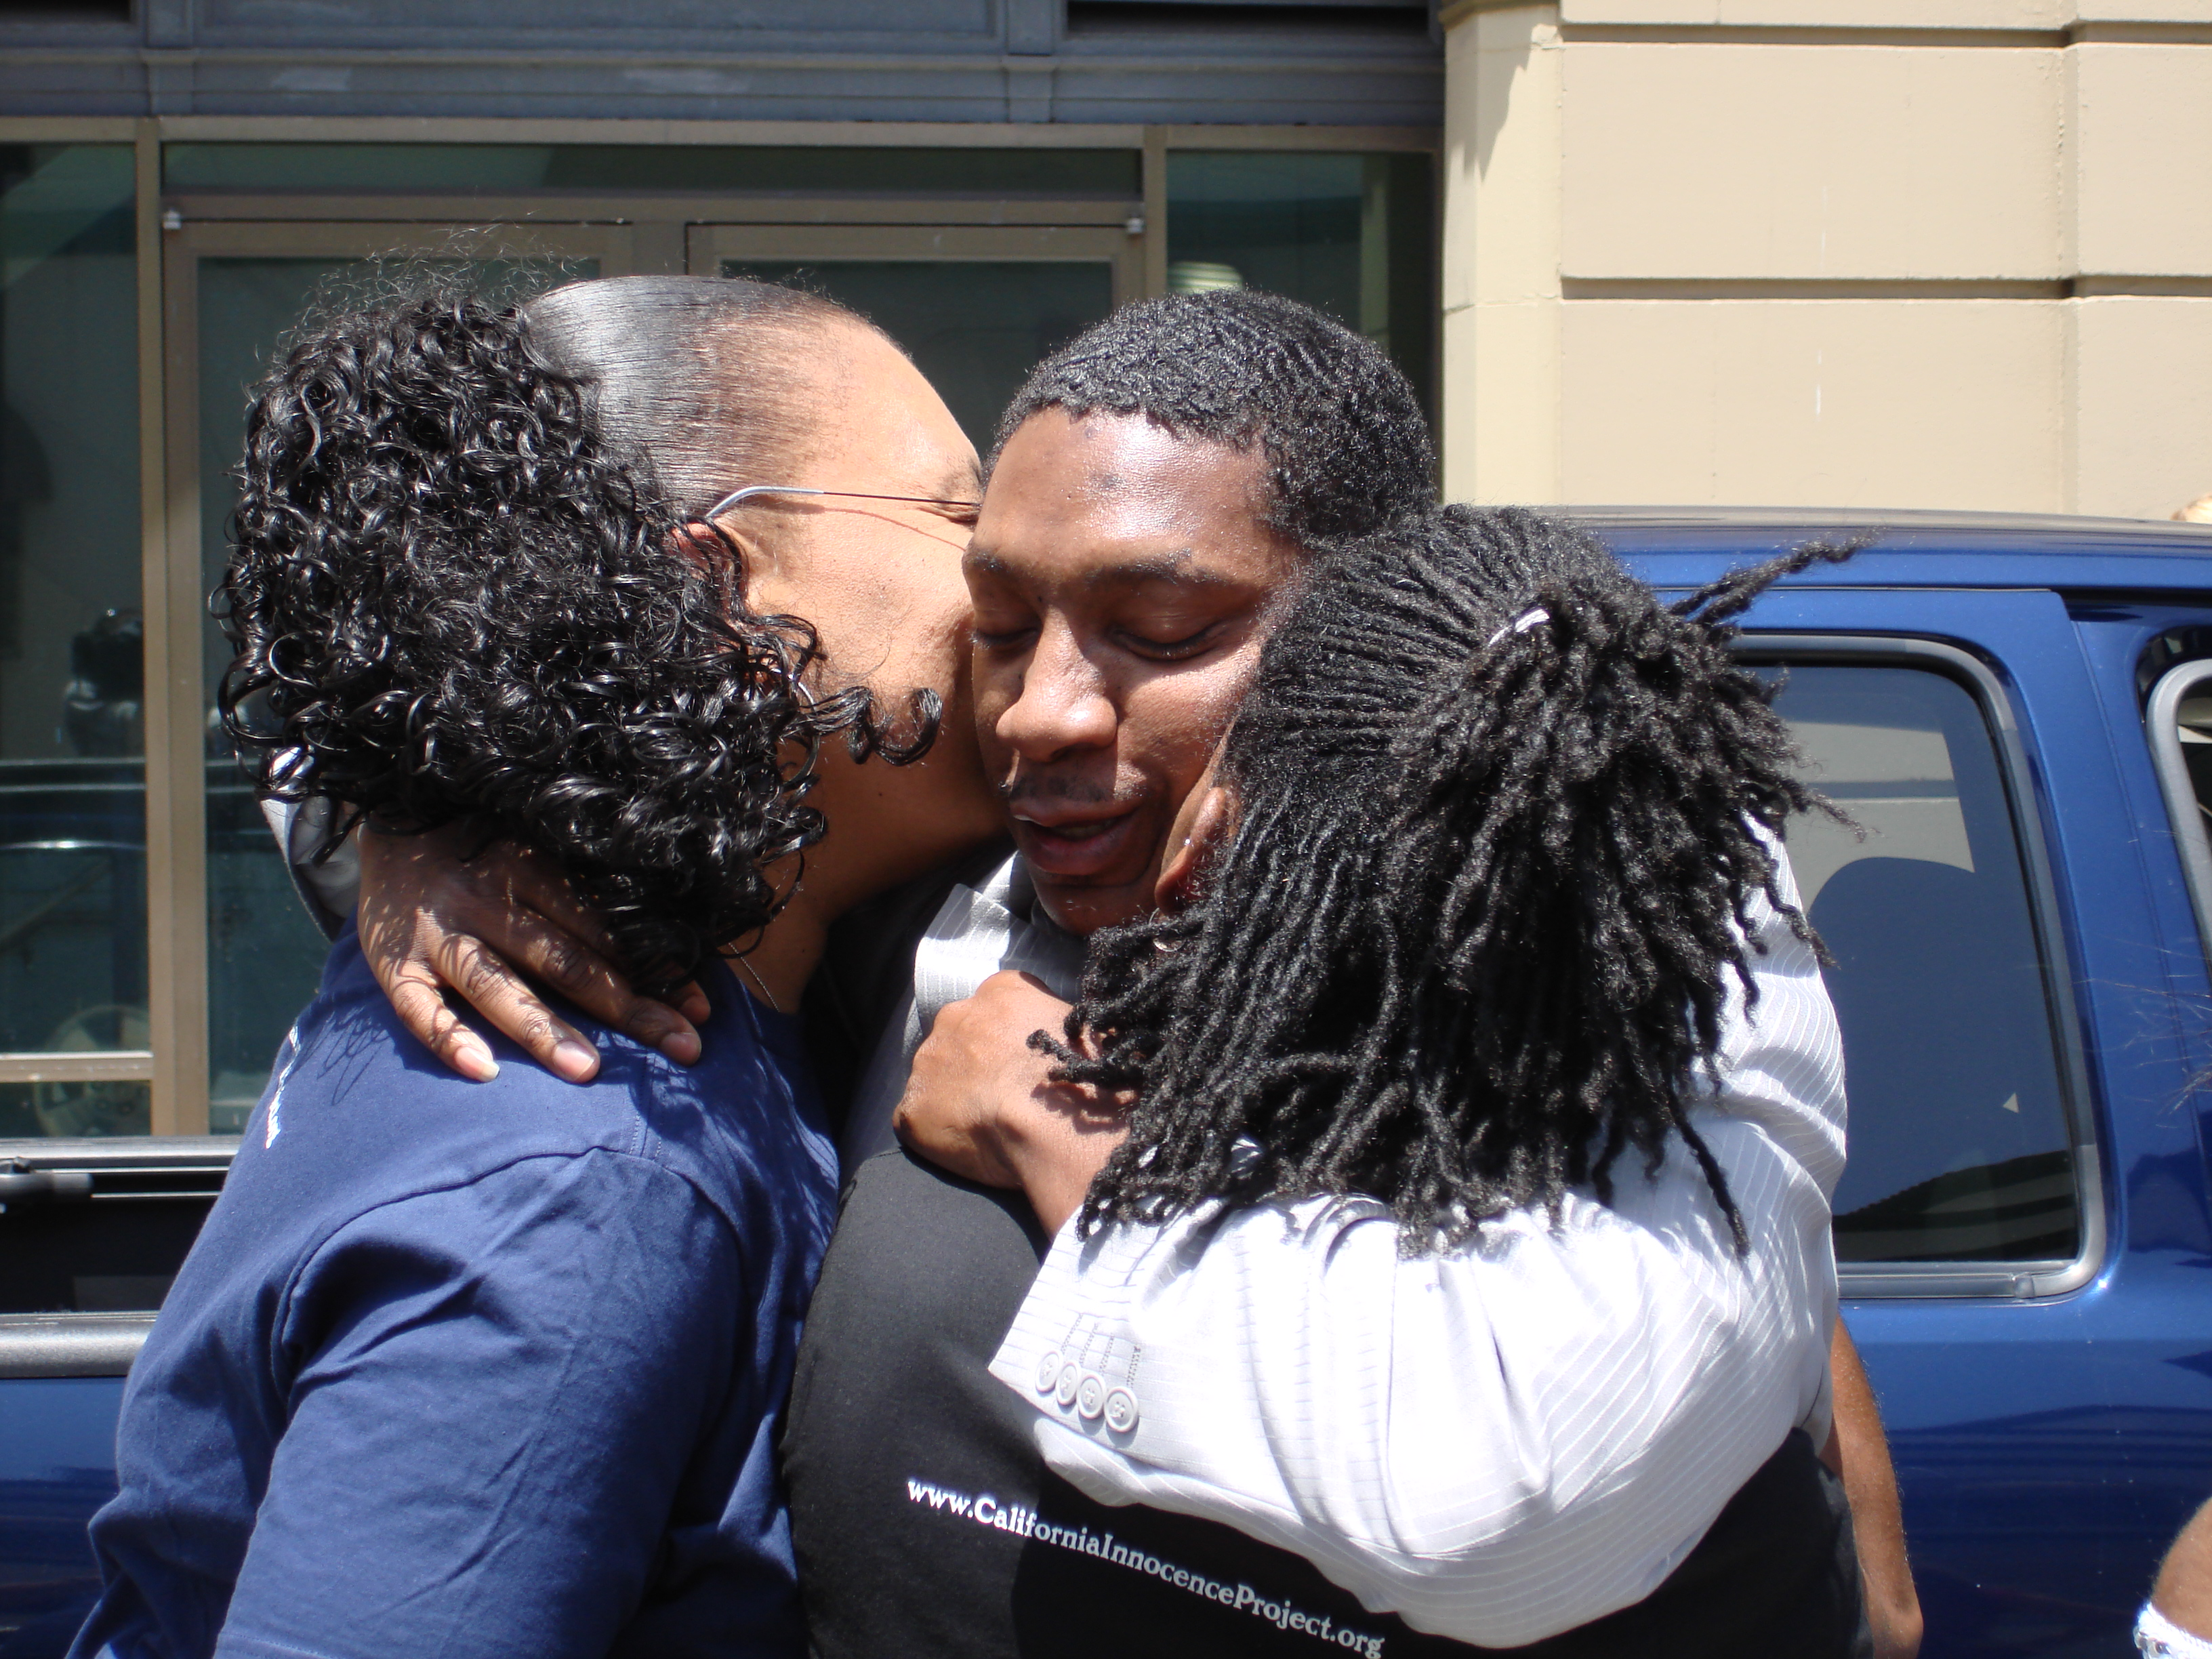 Innocence Project of CA client Reggie Cole hugging relatives